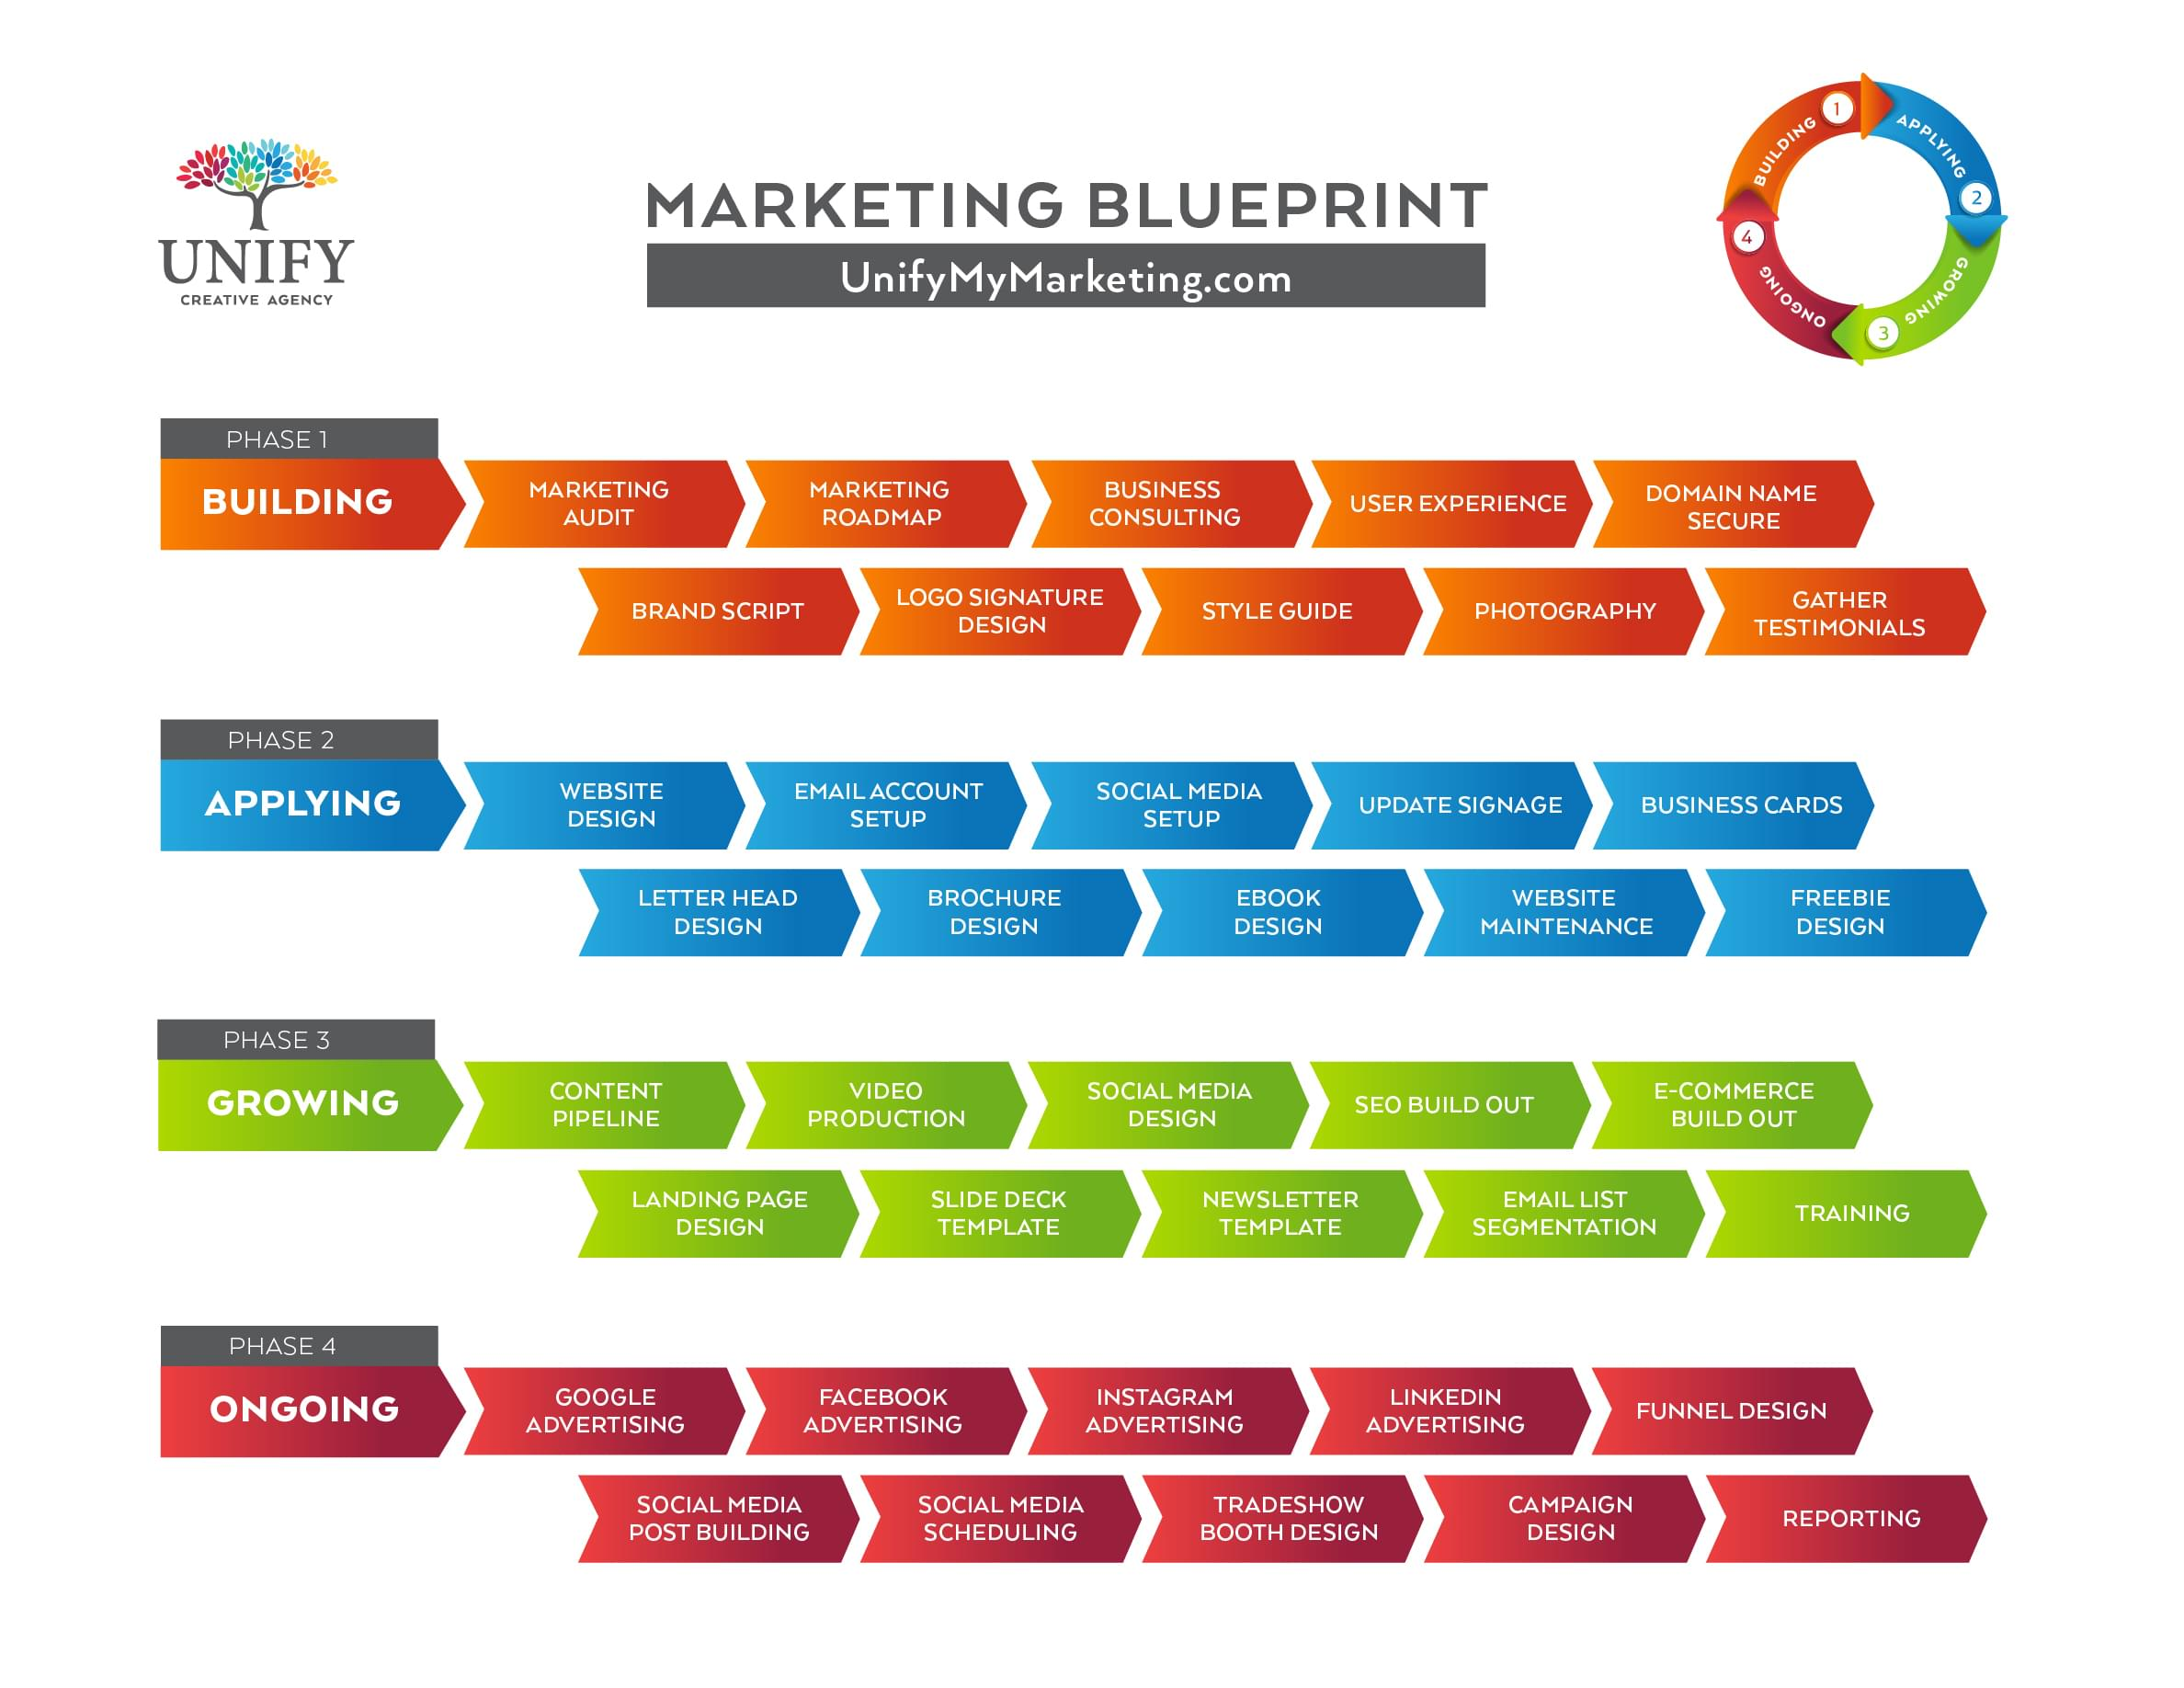 Unify Marketing Blueprint